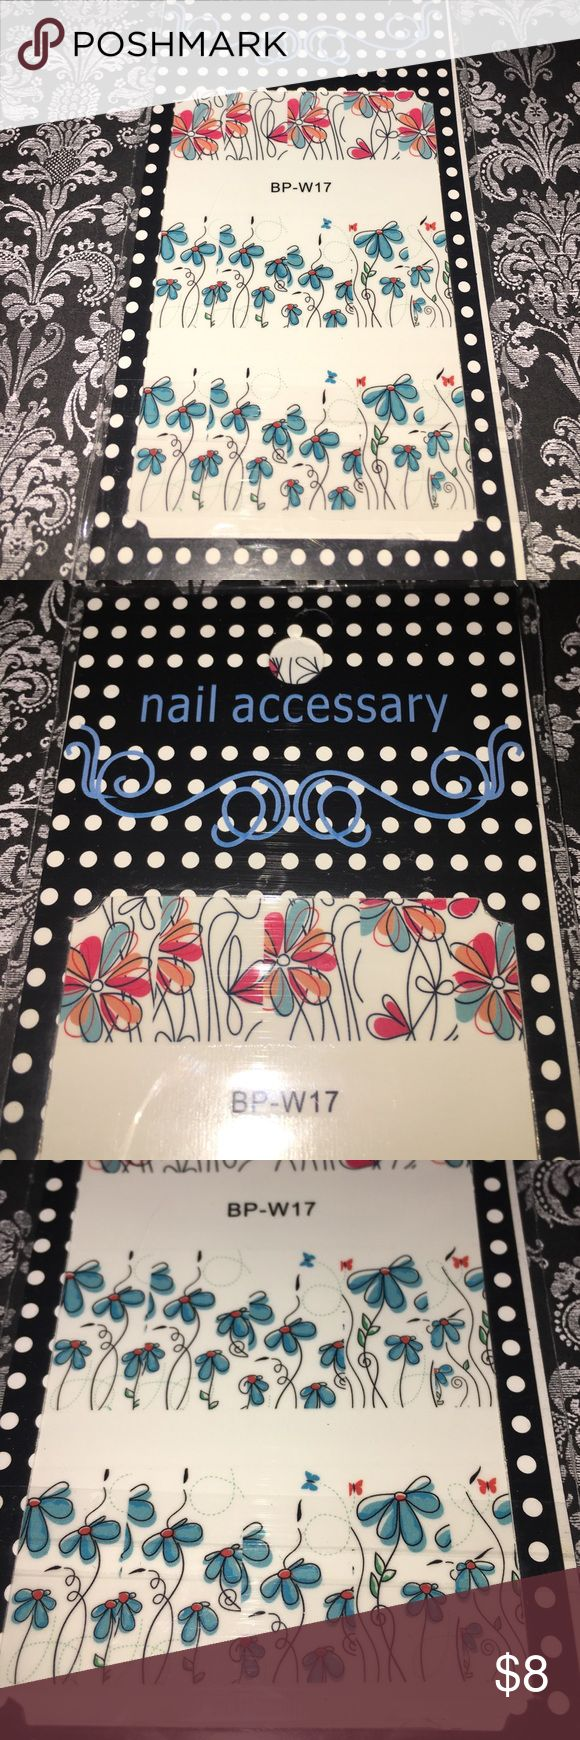 Brand new nail decals for pedicures manicures 💅🏻 Cheerful floral design. Mix and match design. Enough for at least 2 full sets Makeup